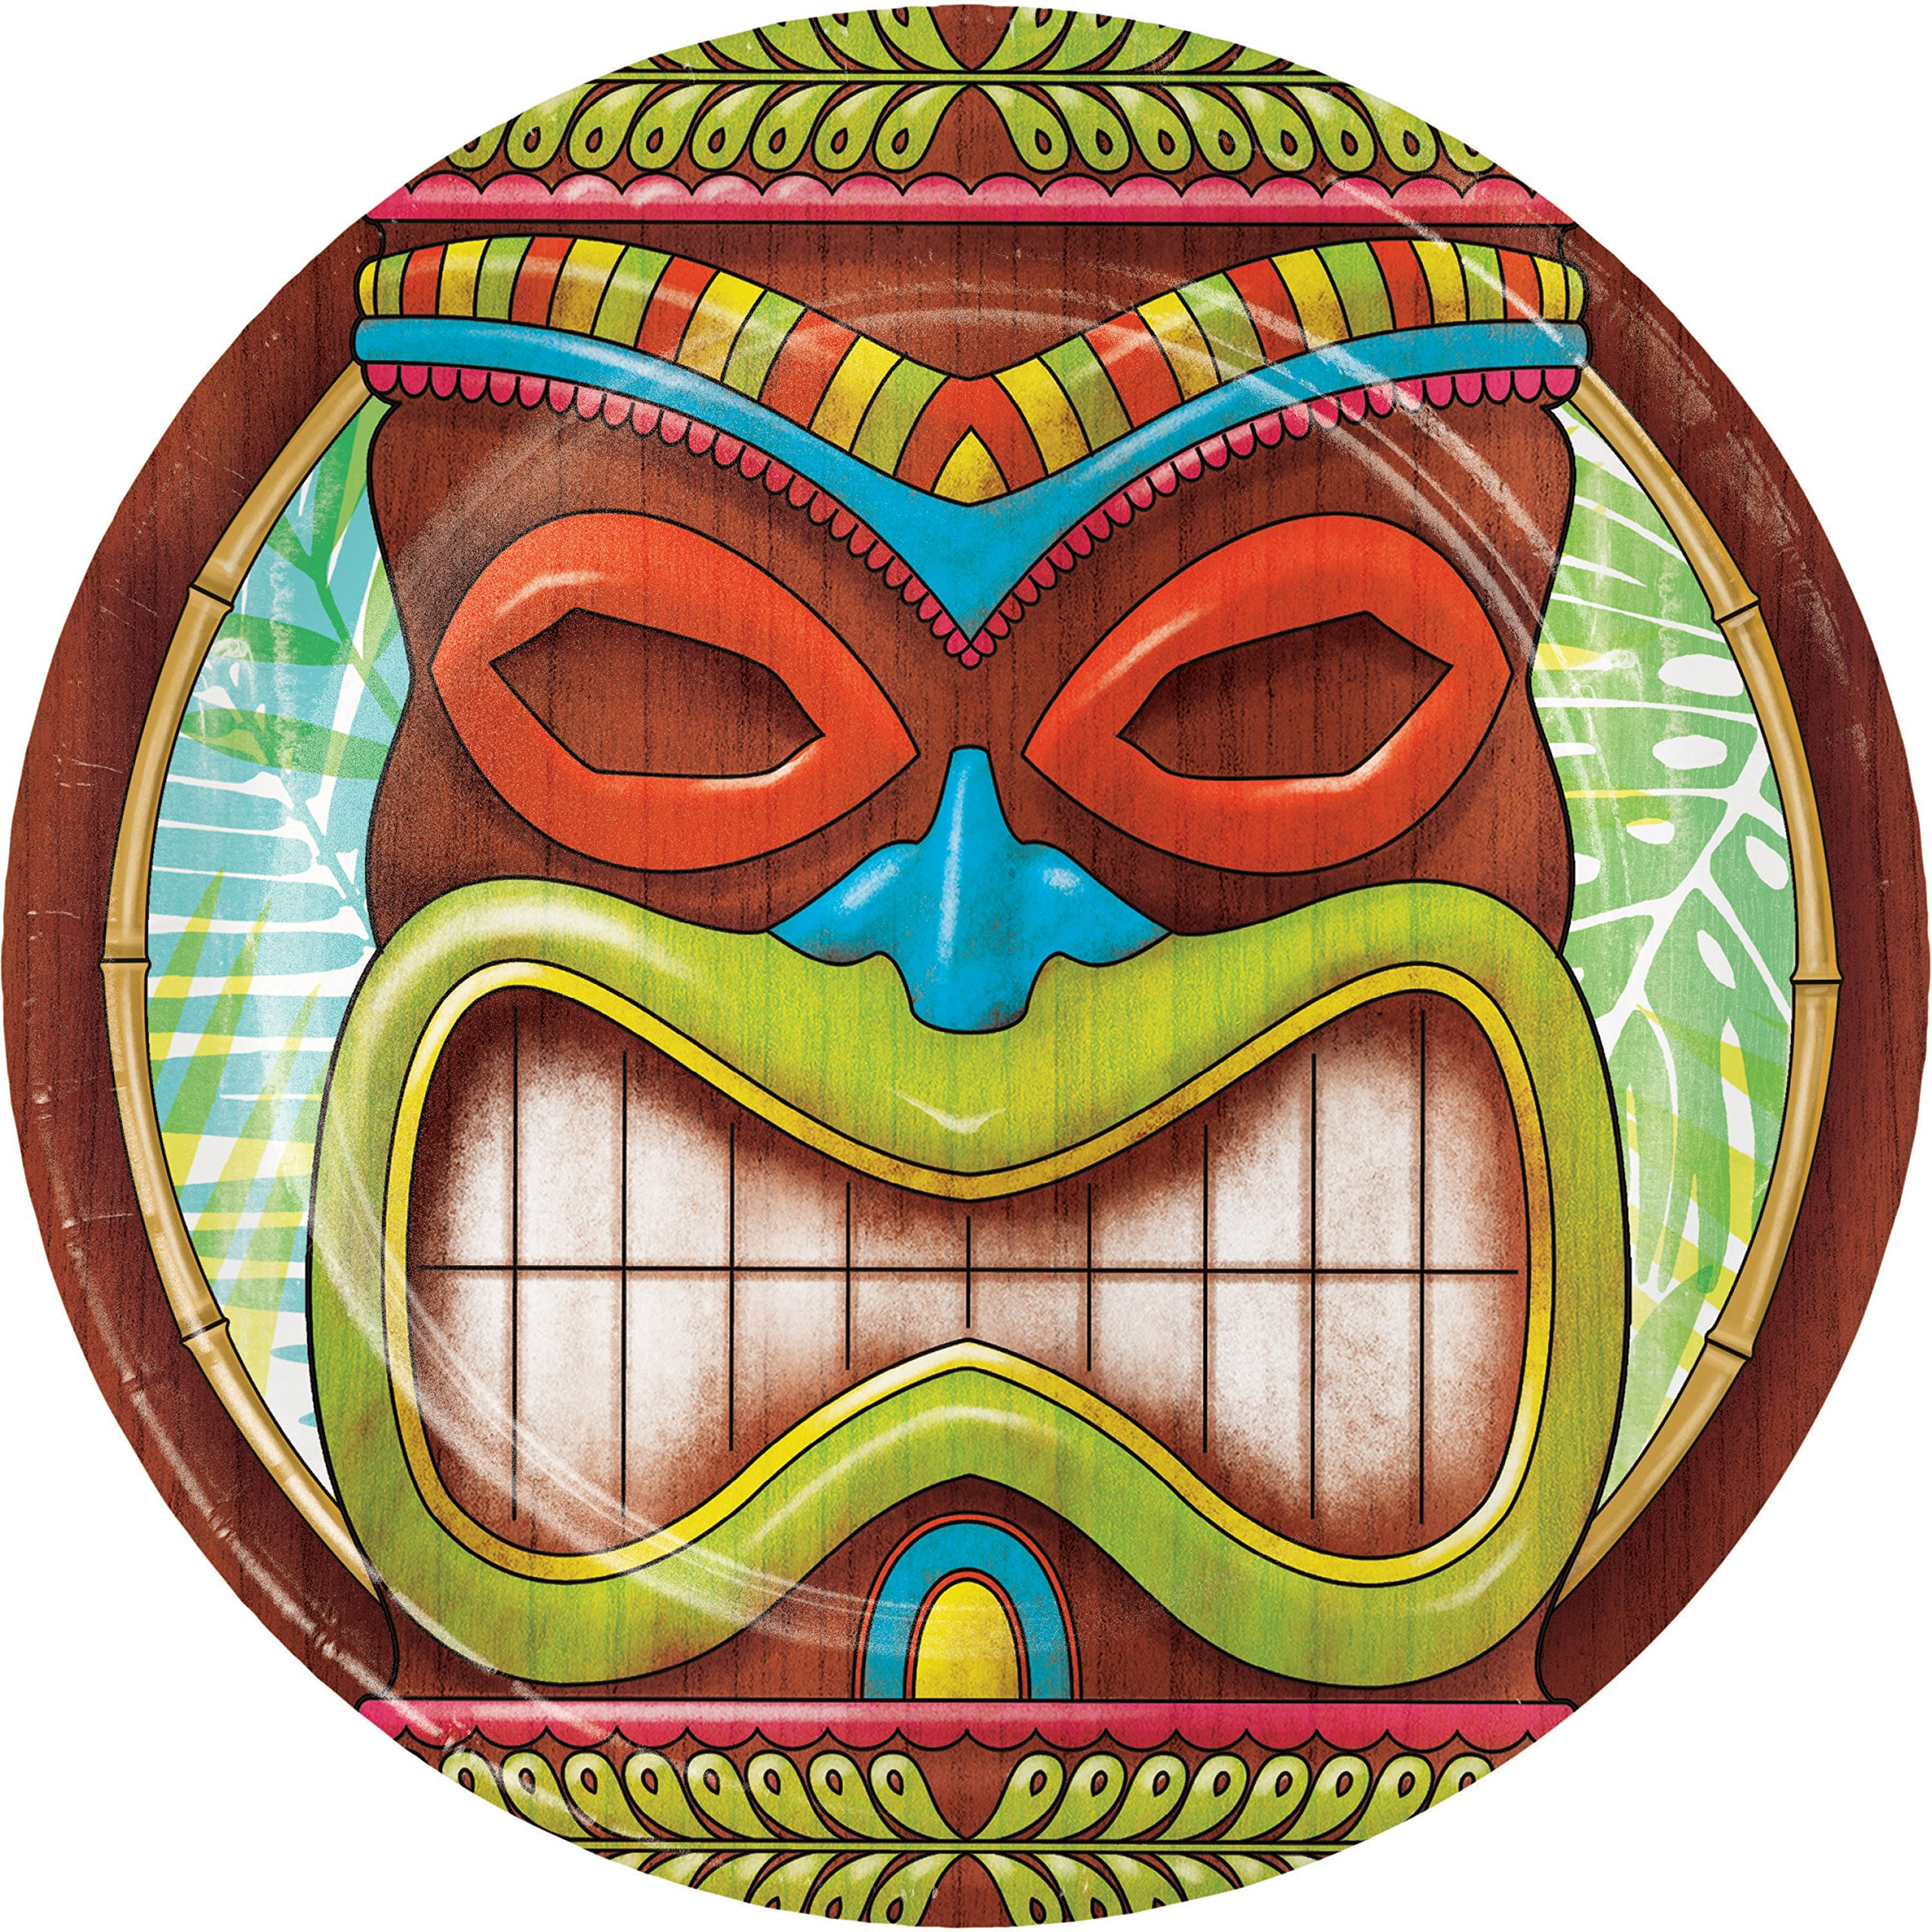 Tiki Time Dessert Plates, 24 ct by Creative Converting (Image #1)